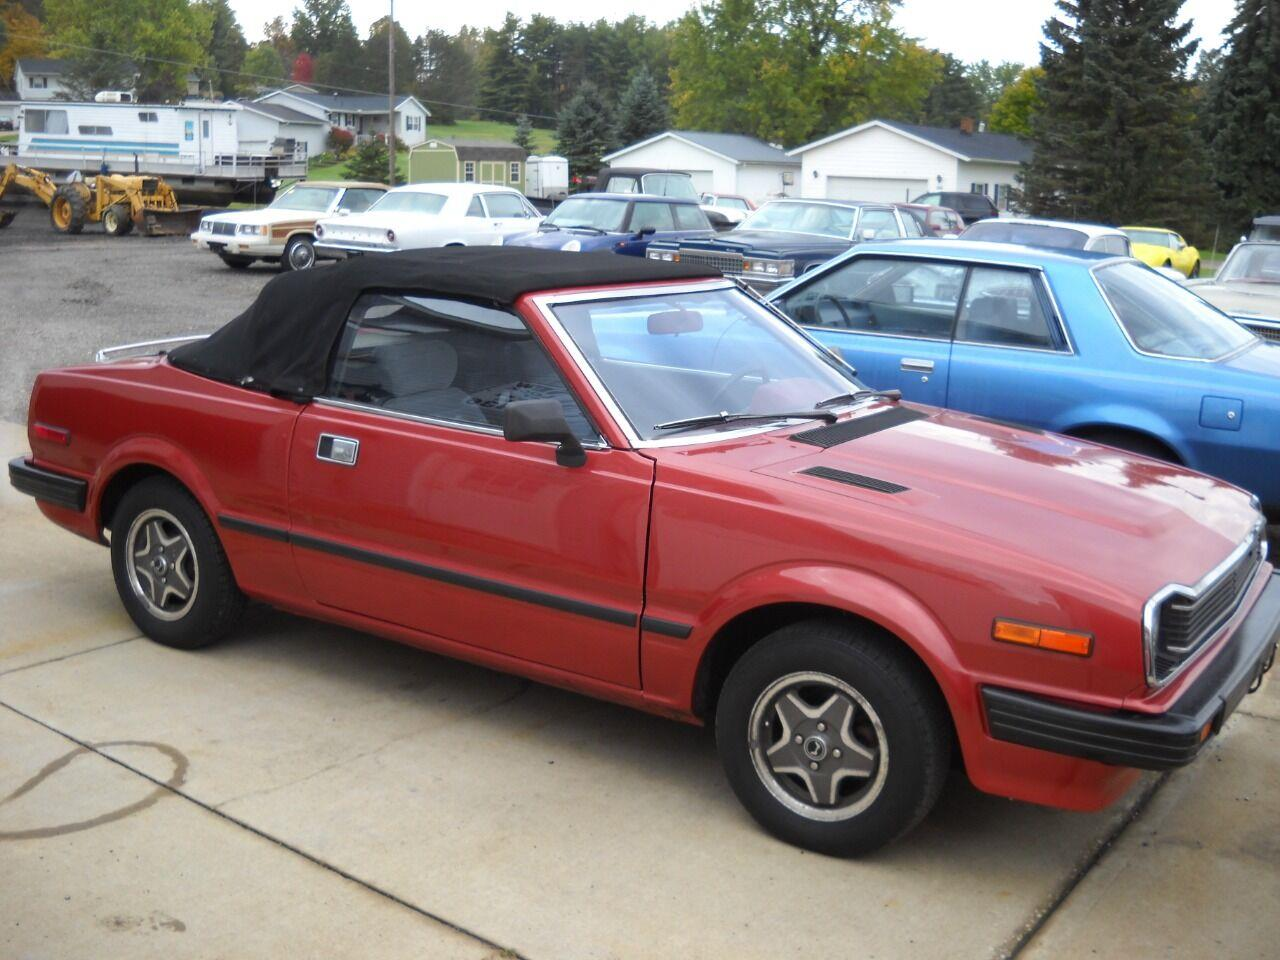 1981 Honda Prelude (CC-1328442) for sale in Ashland, Ohio